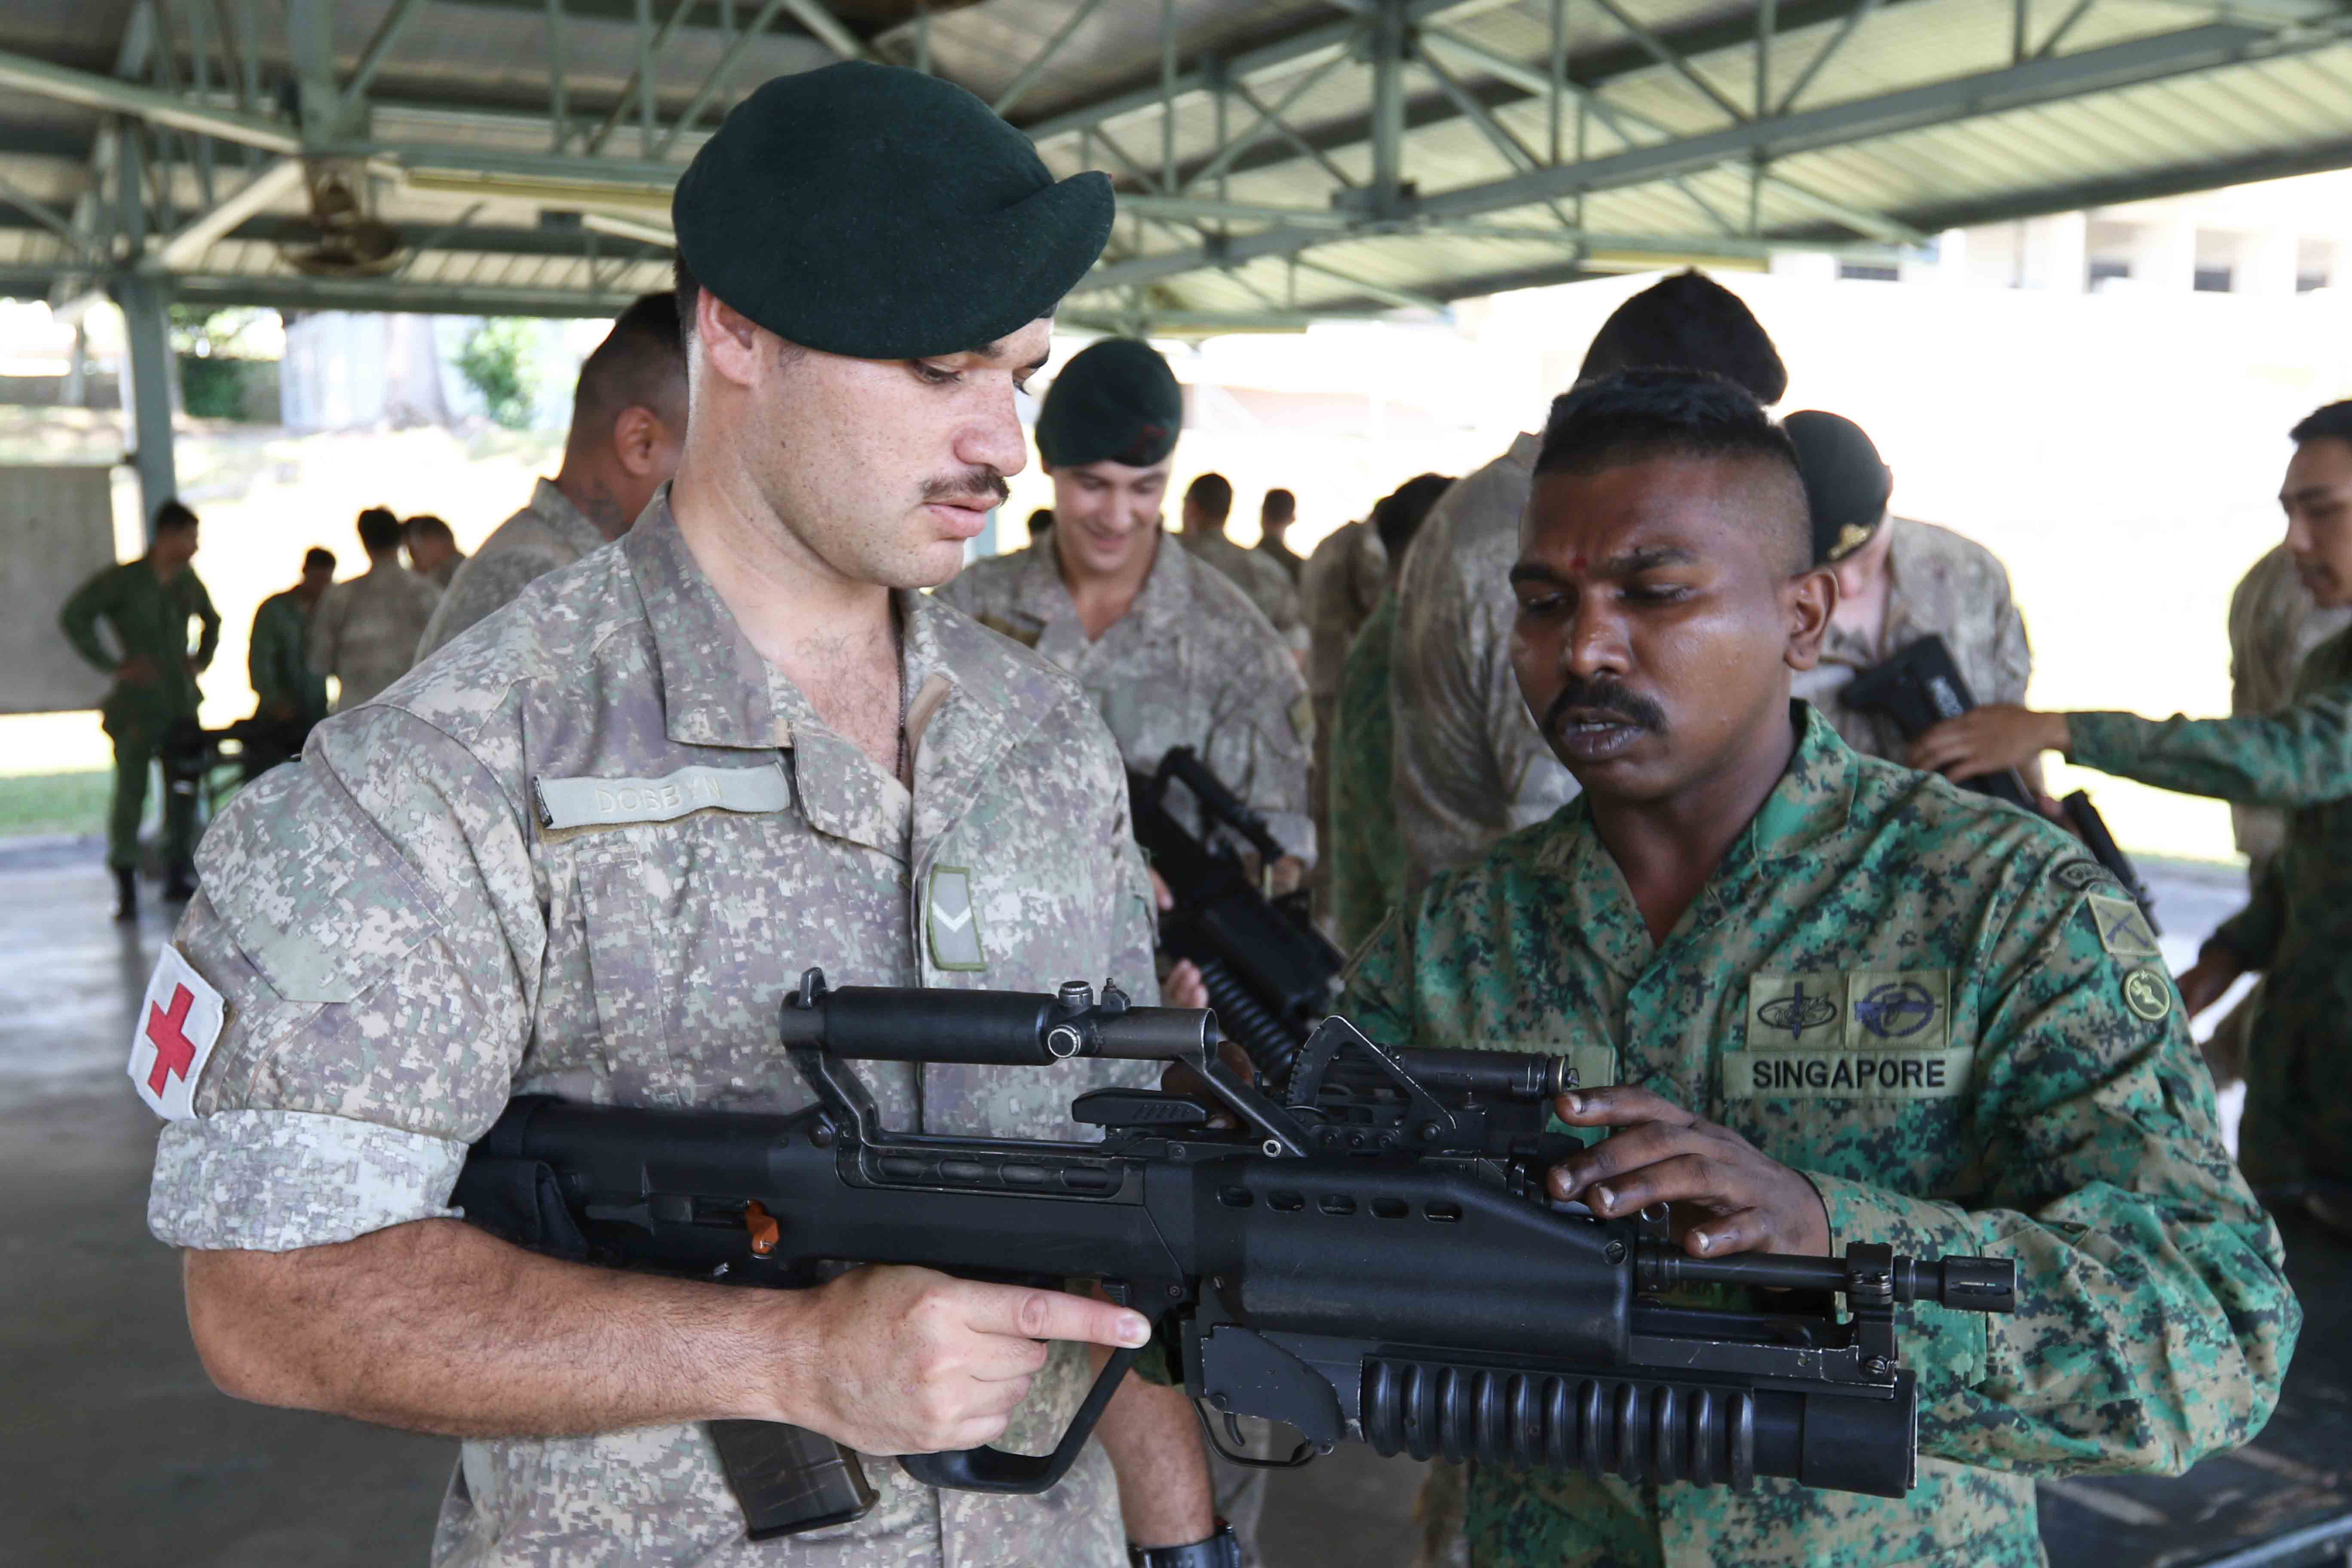 Our soldier sharing with fellow NZDF soldiers on our SAR 21 M203 Grenade Launcher capabilities and specifications.